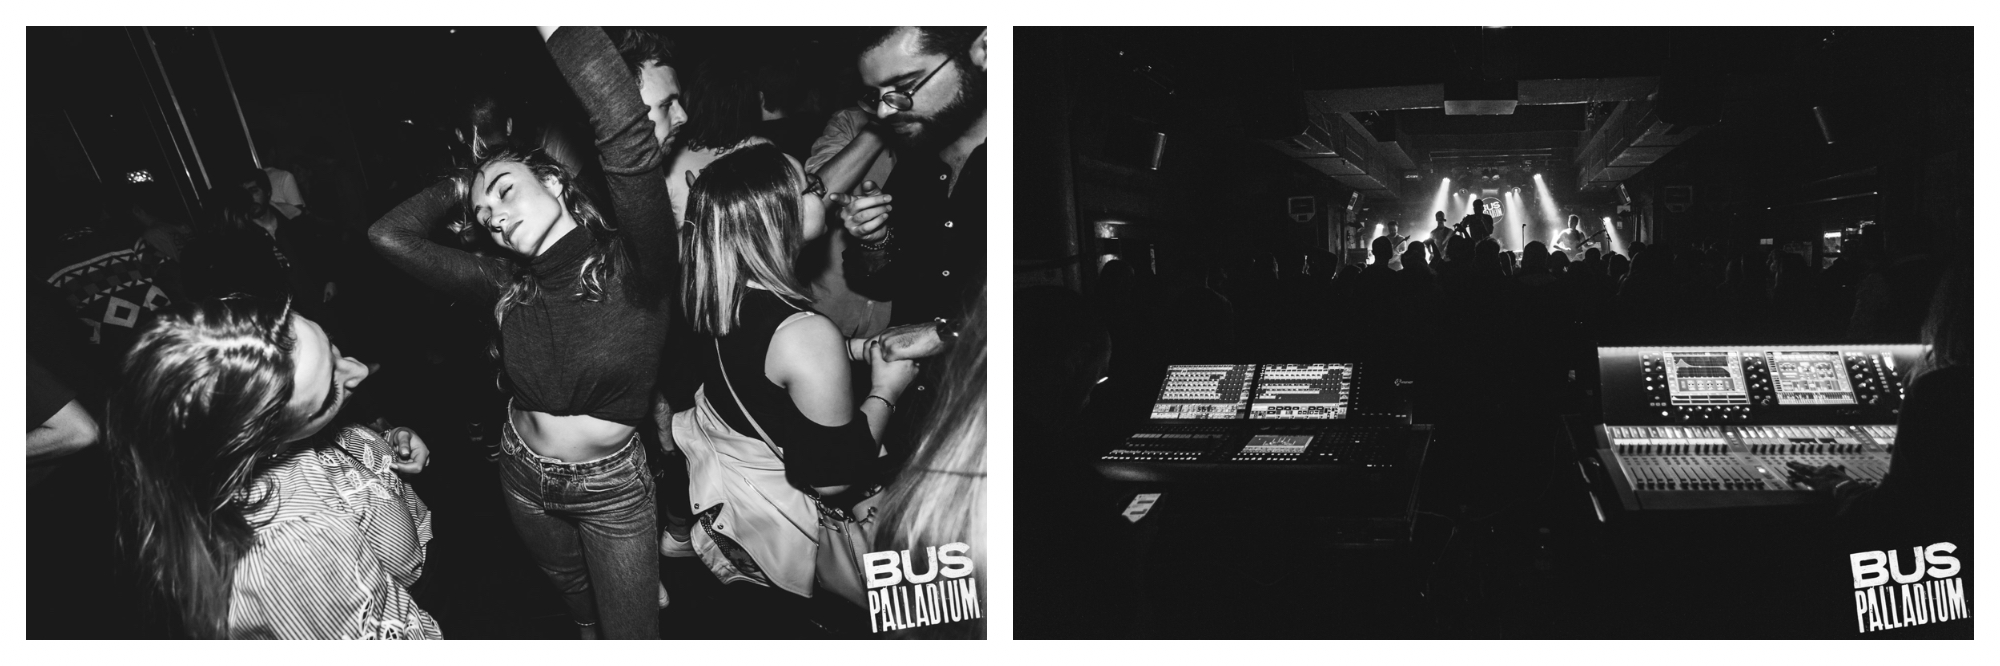 A black and white image of a woman dancing with her eyes closed, arms raised in a night club (left). A black and white image of the sound boot at a night club (right).